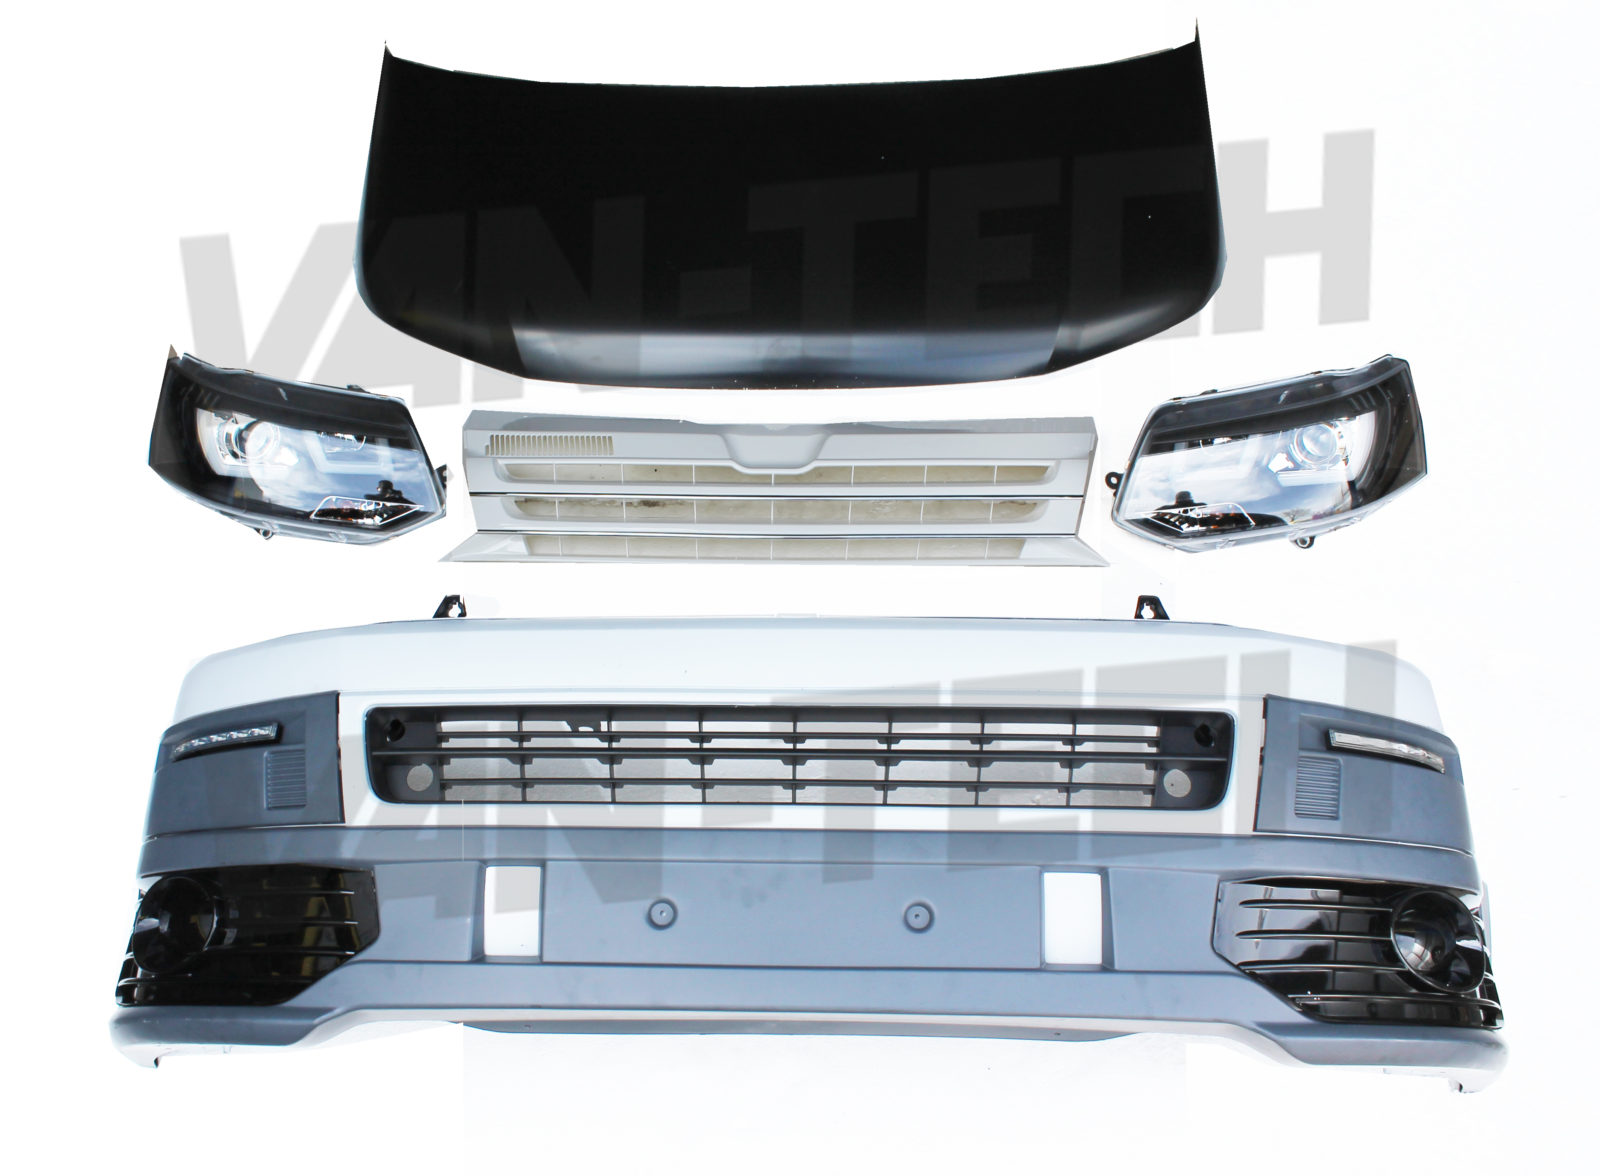 Vw Transporter T5 Front End Conversion Styling Pack 1 Van Tech